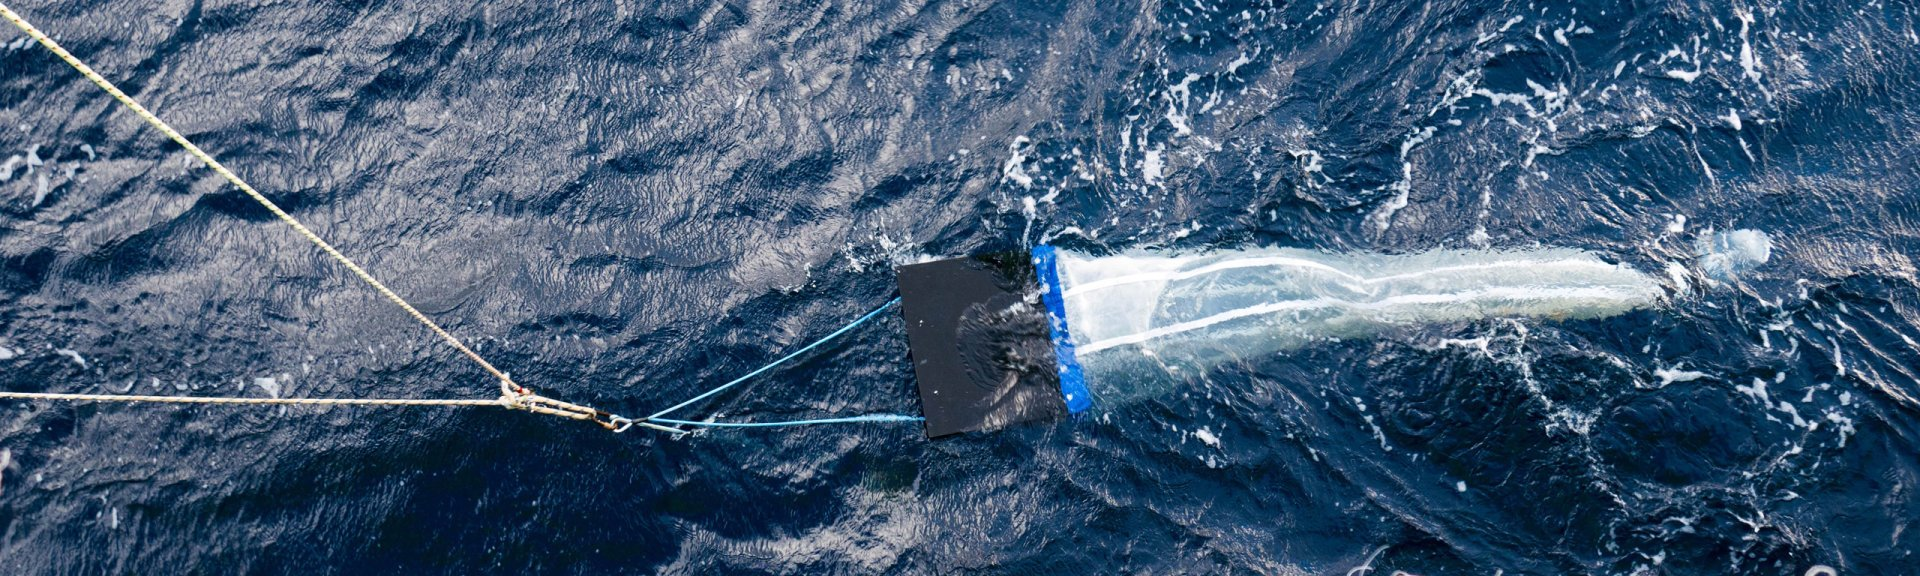 A manta net used for collecting plankton samples from the water. Photo by Asher Flatt.